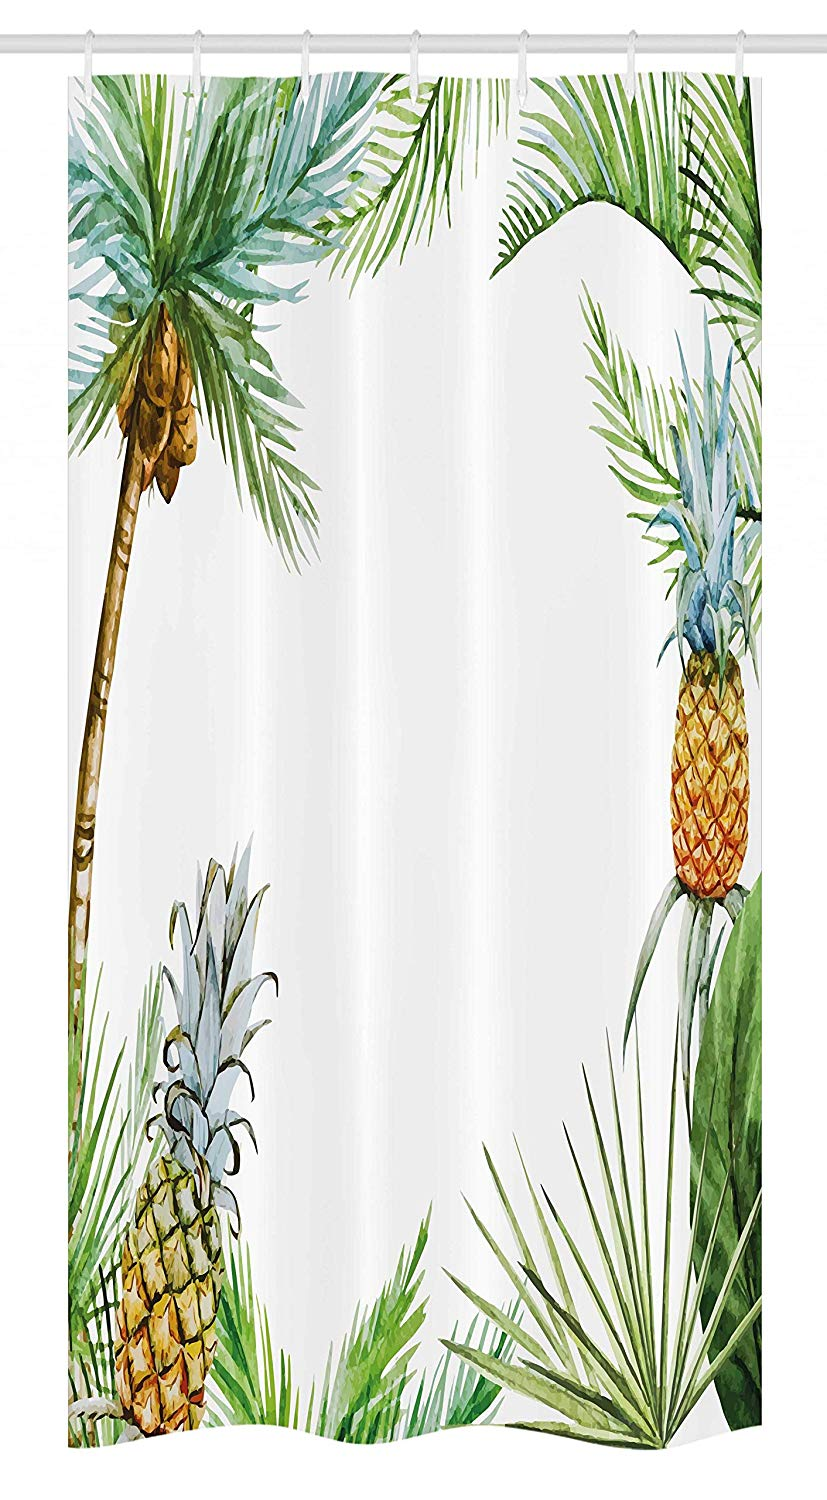 Ambesonne Pineapple Stall Shower Curtain, Watercolor Tropical Island Style Border Print Exotic Fruit Palm Trees and Leaves, Fabric Bathroom Decor Set with Hooks, 36